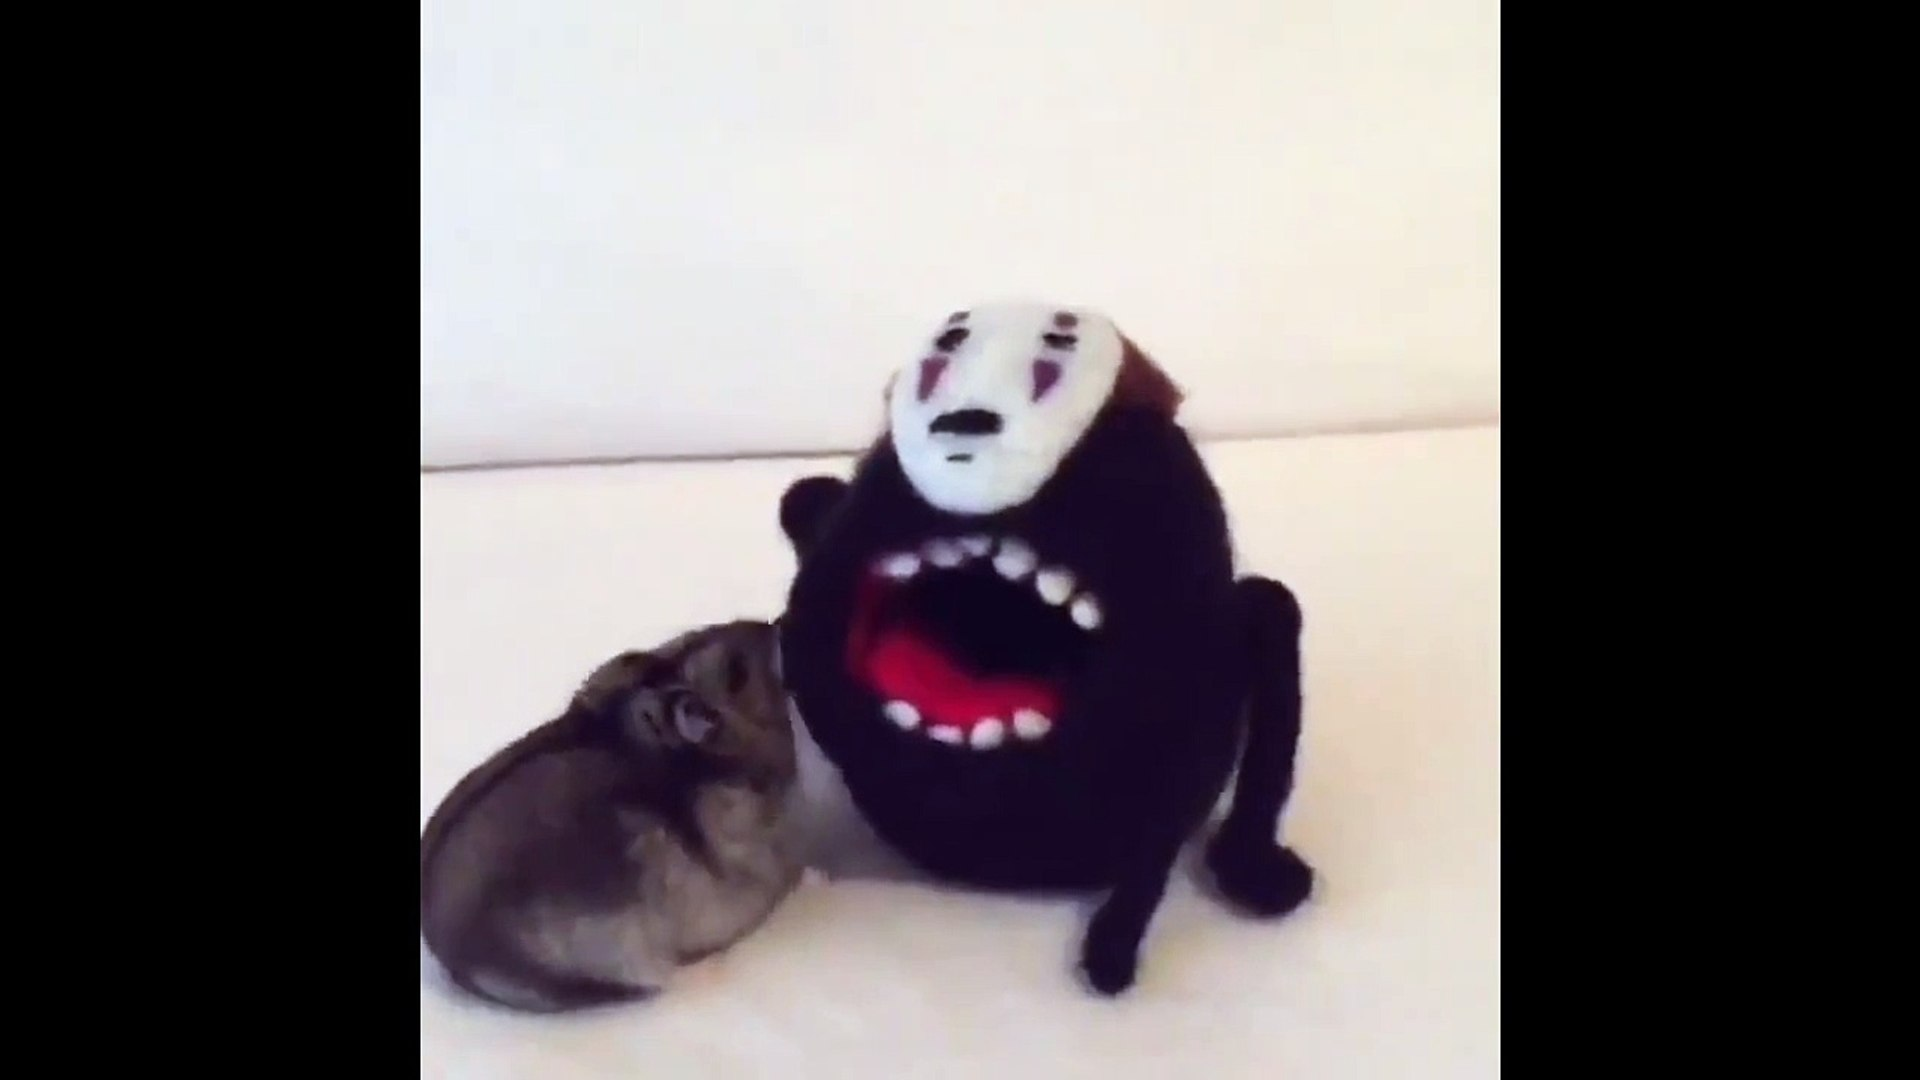 Fearless hamster battling giant No-Face - Spirited Away In Real Life ft Fearless Monster